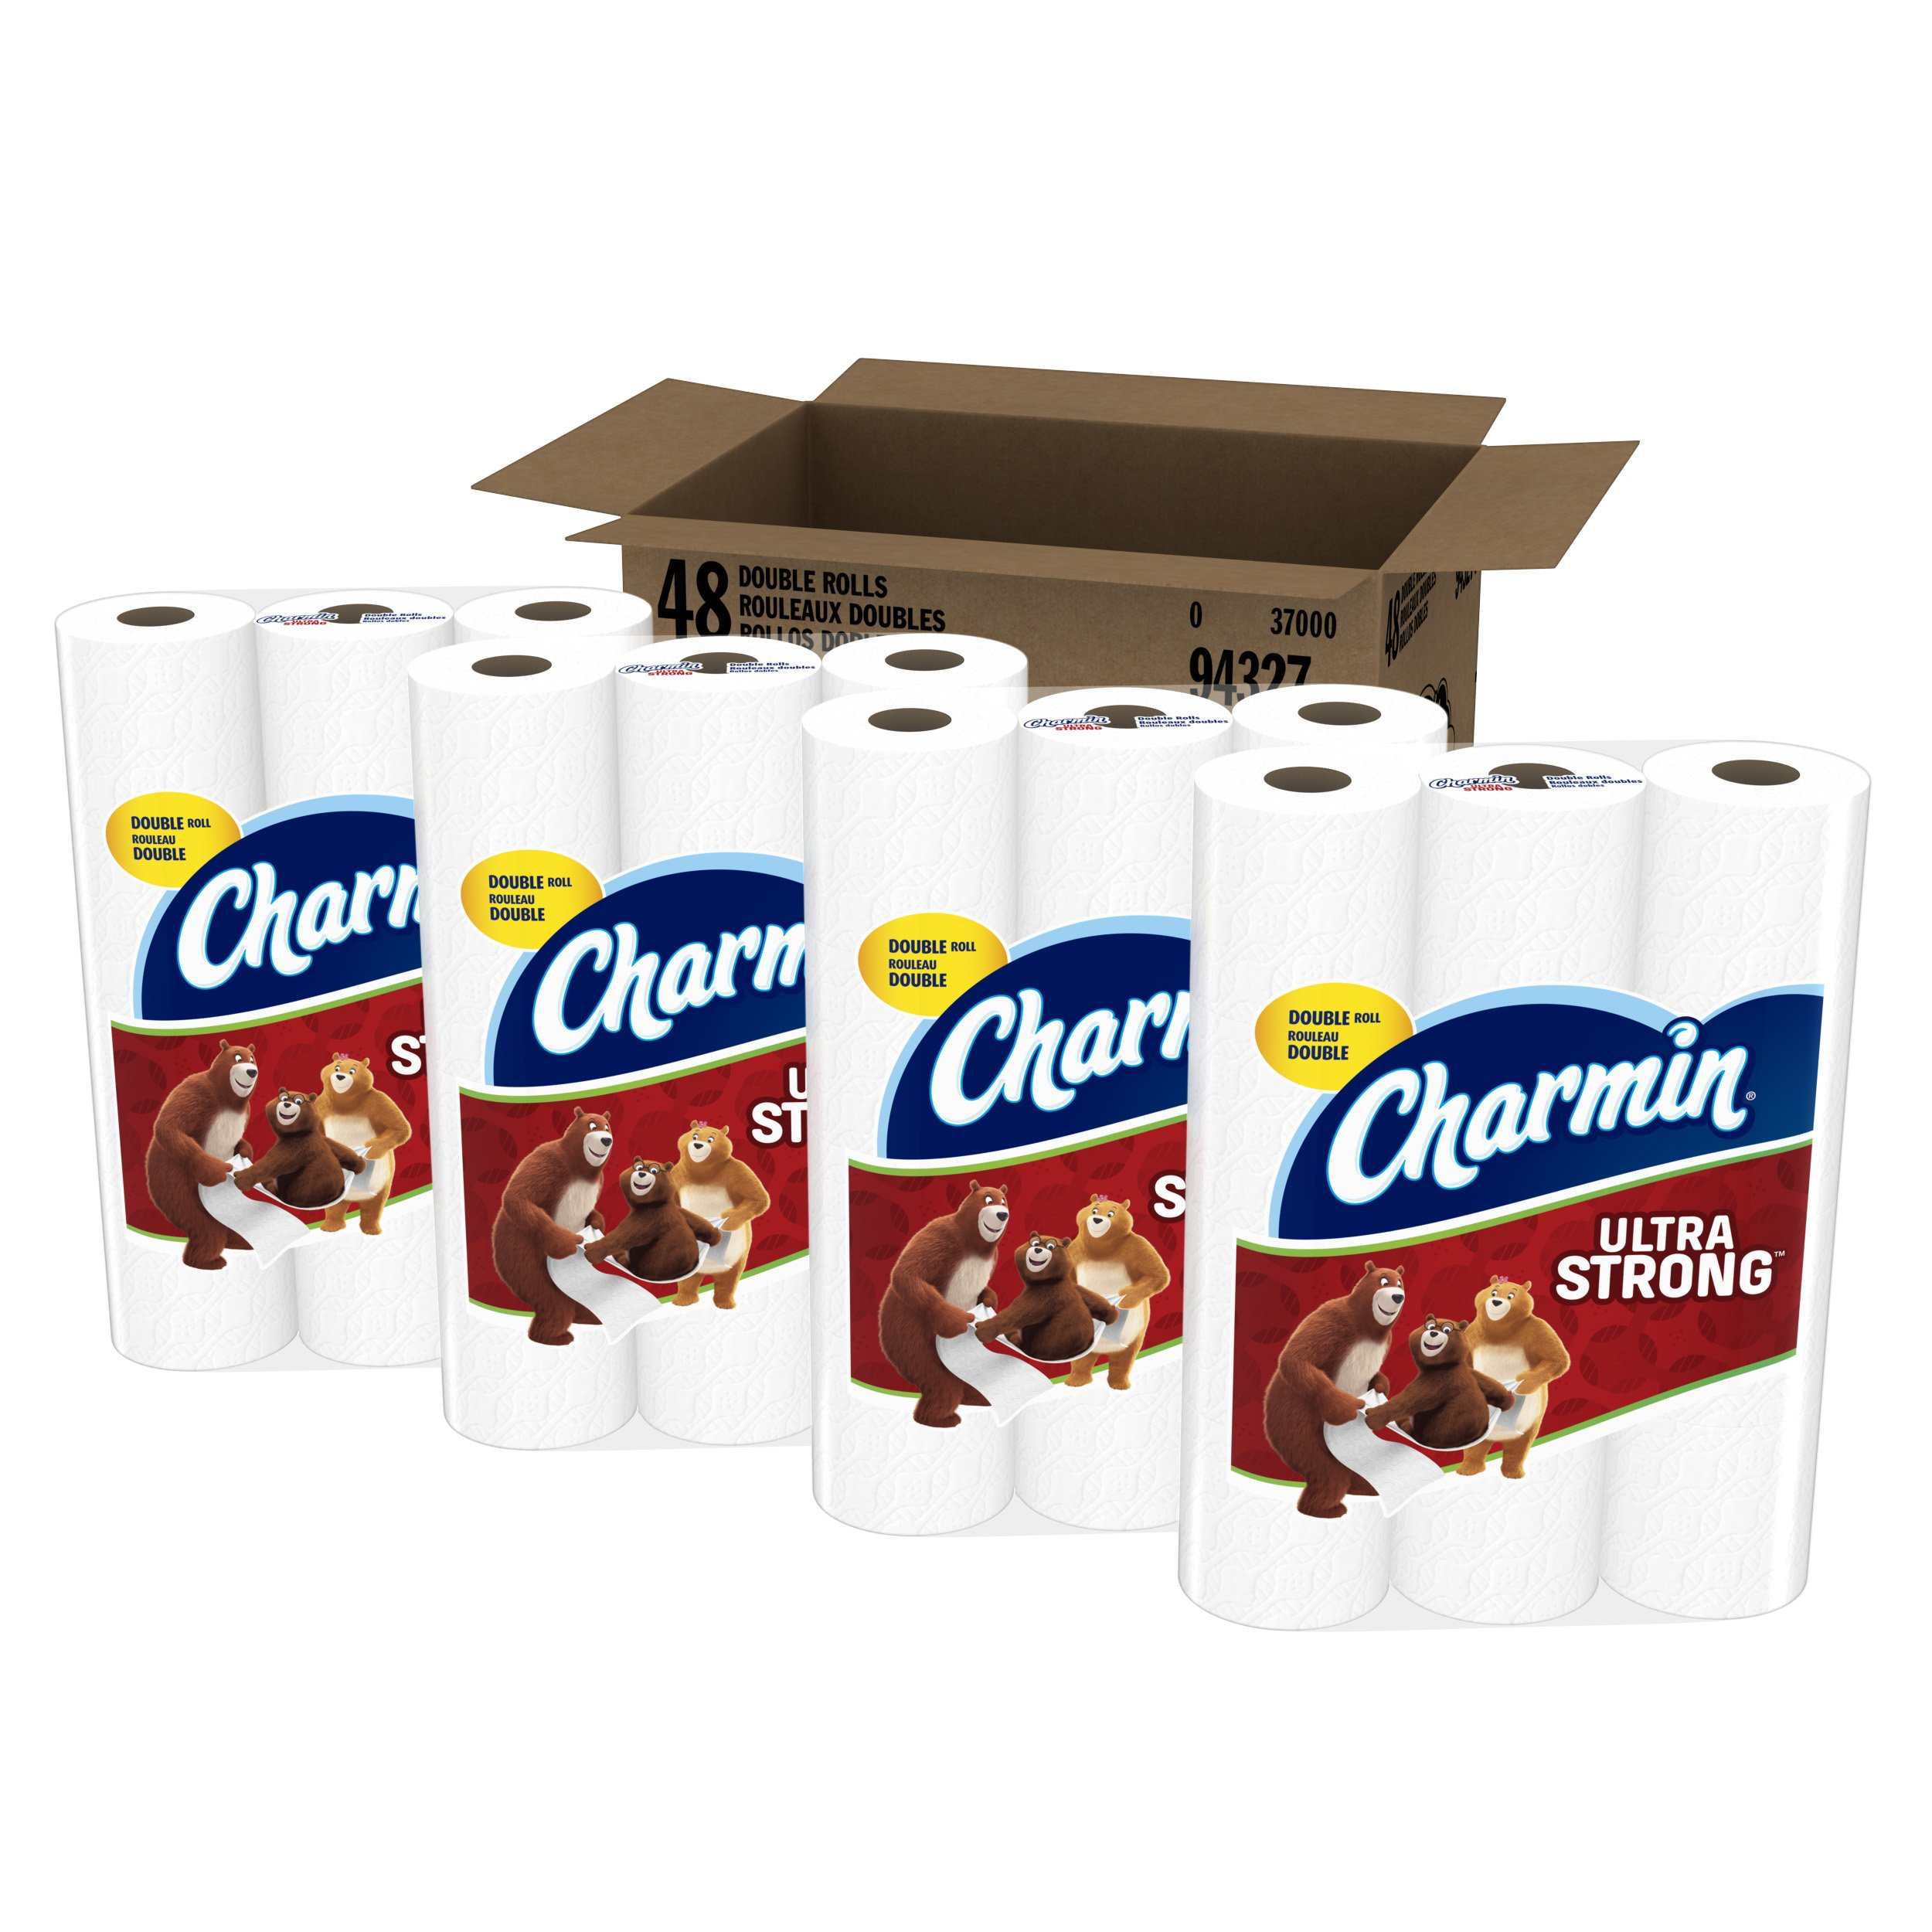 Charmin Ultra Strong Toilet Paper, 48 Count, Pack of 4 by Charmin